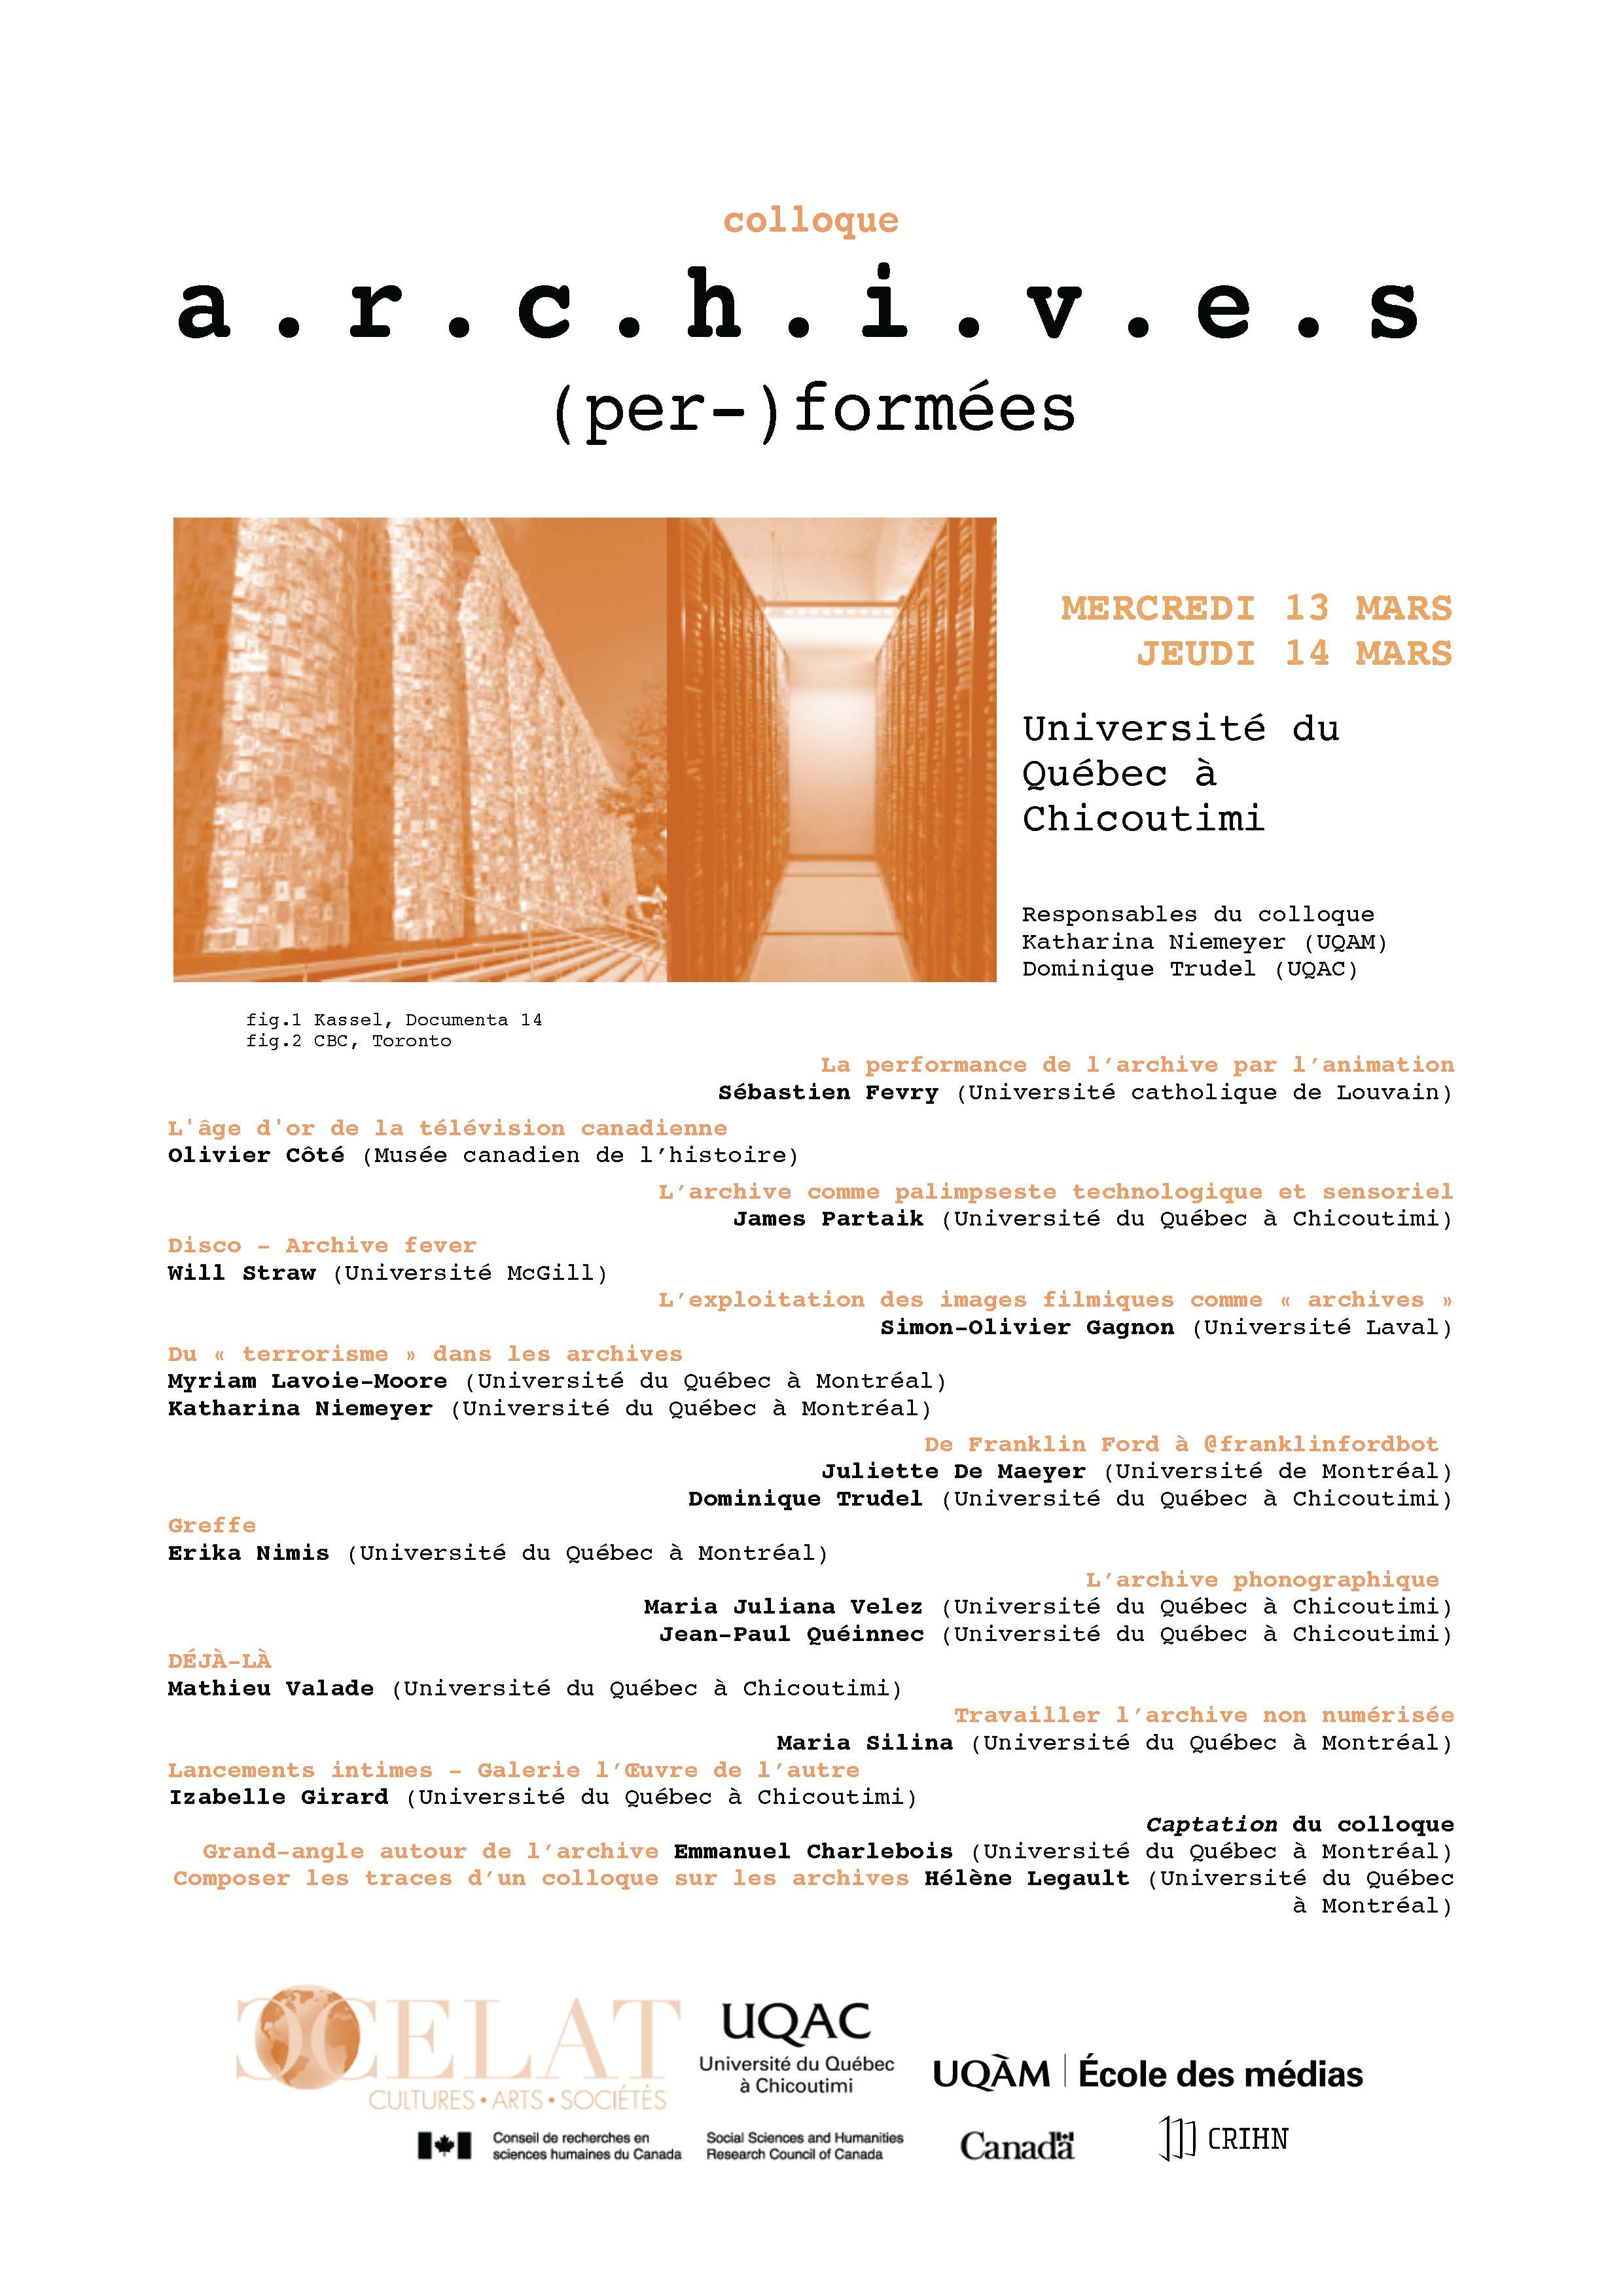 affiche colloque archives